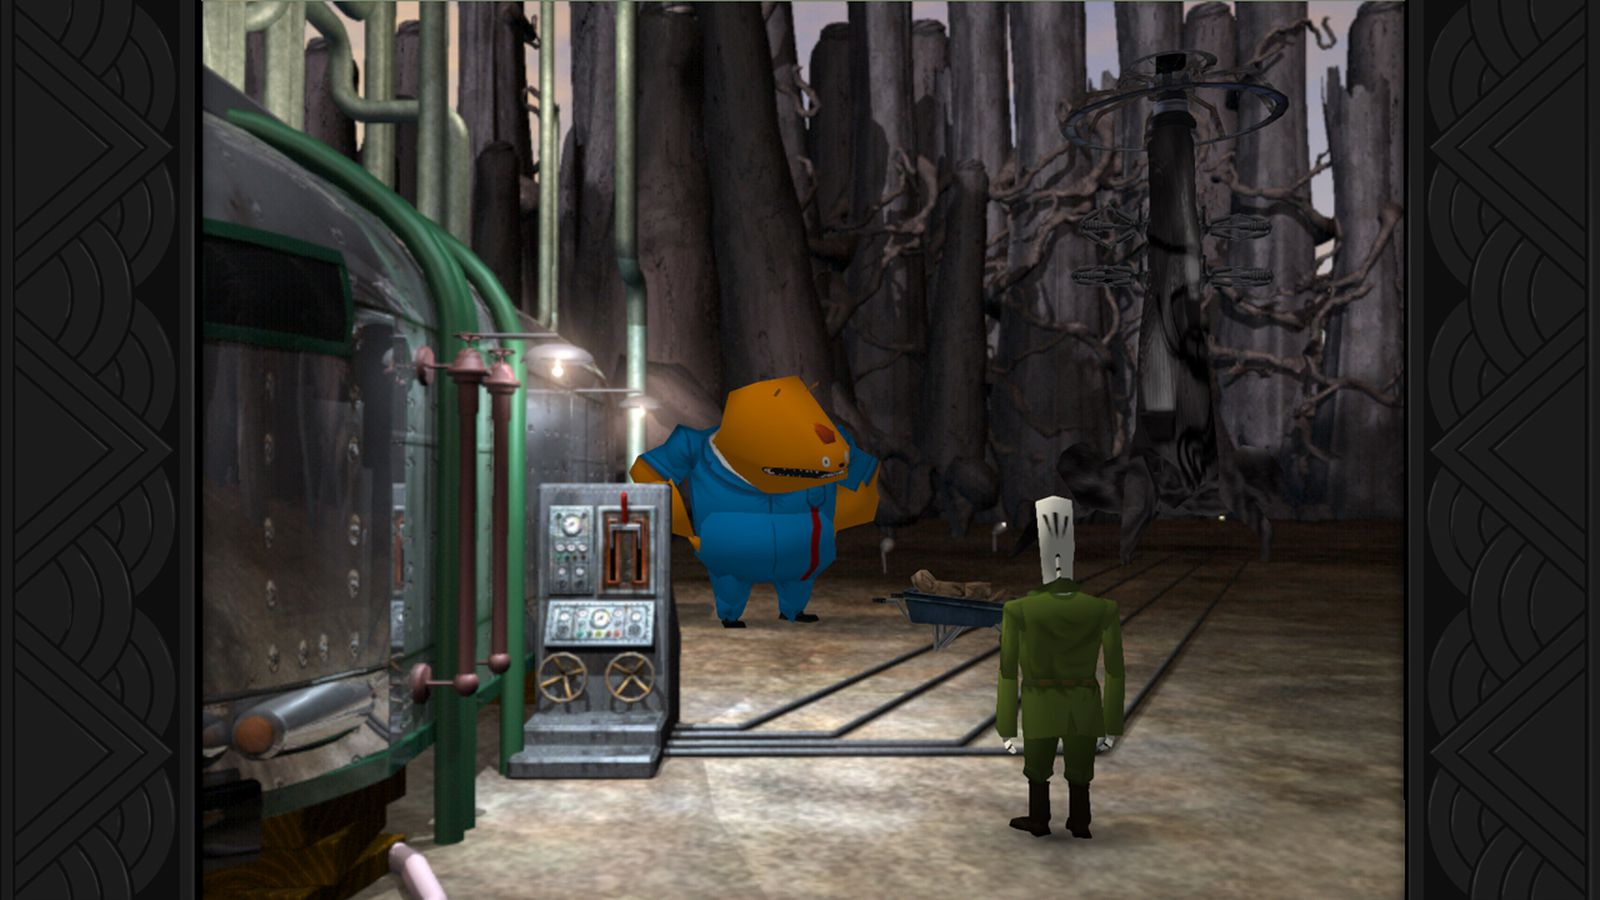 Color zen metacritic - Playstation Plus Brings You Grim Fandango Remastered And More In January 2016 Polygon